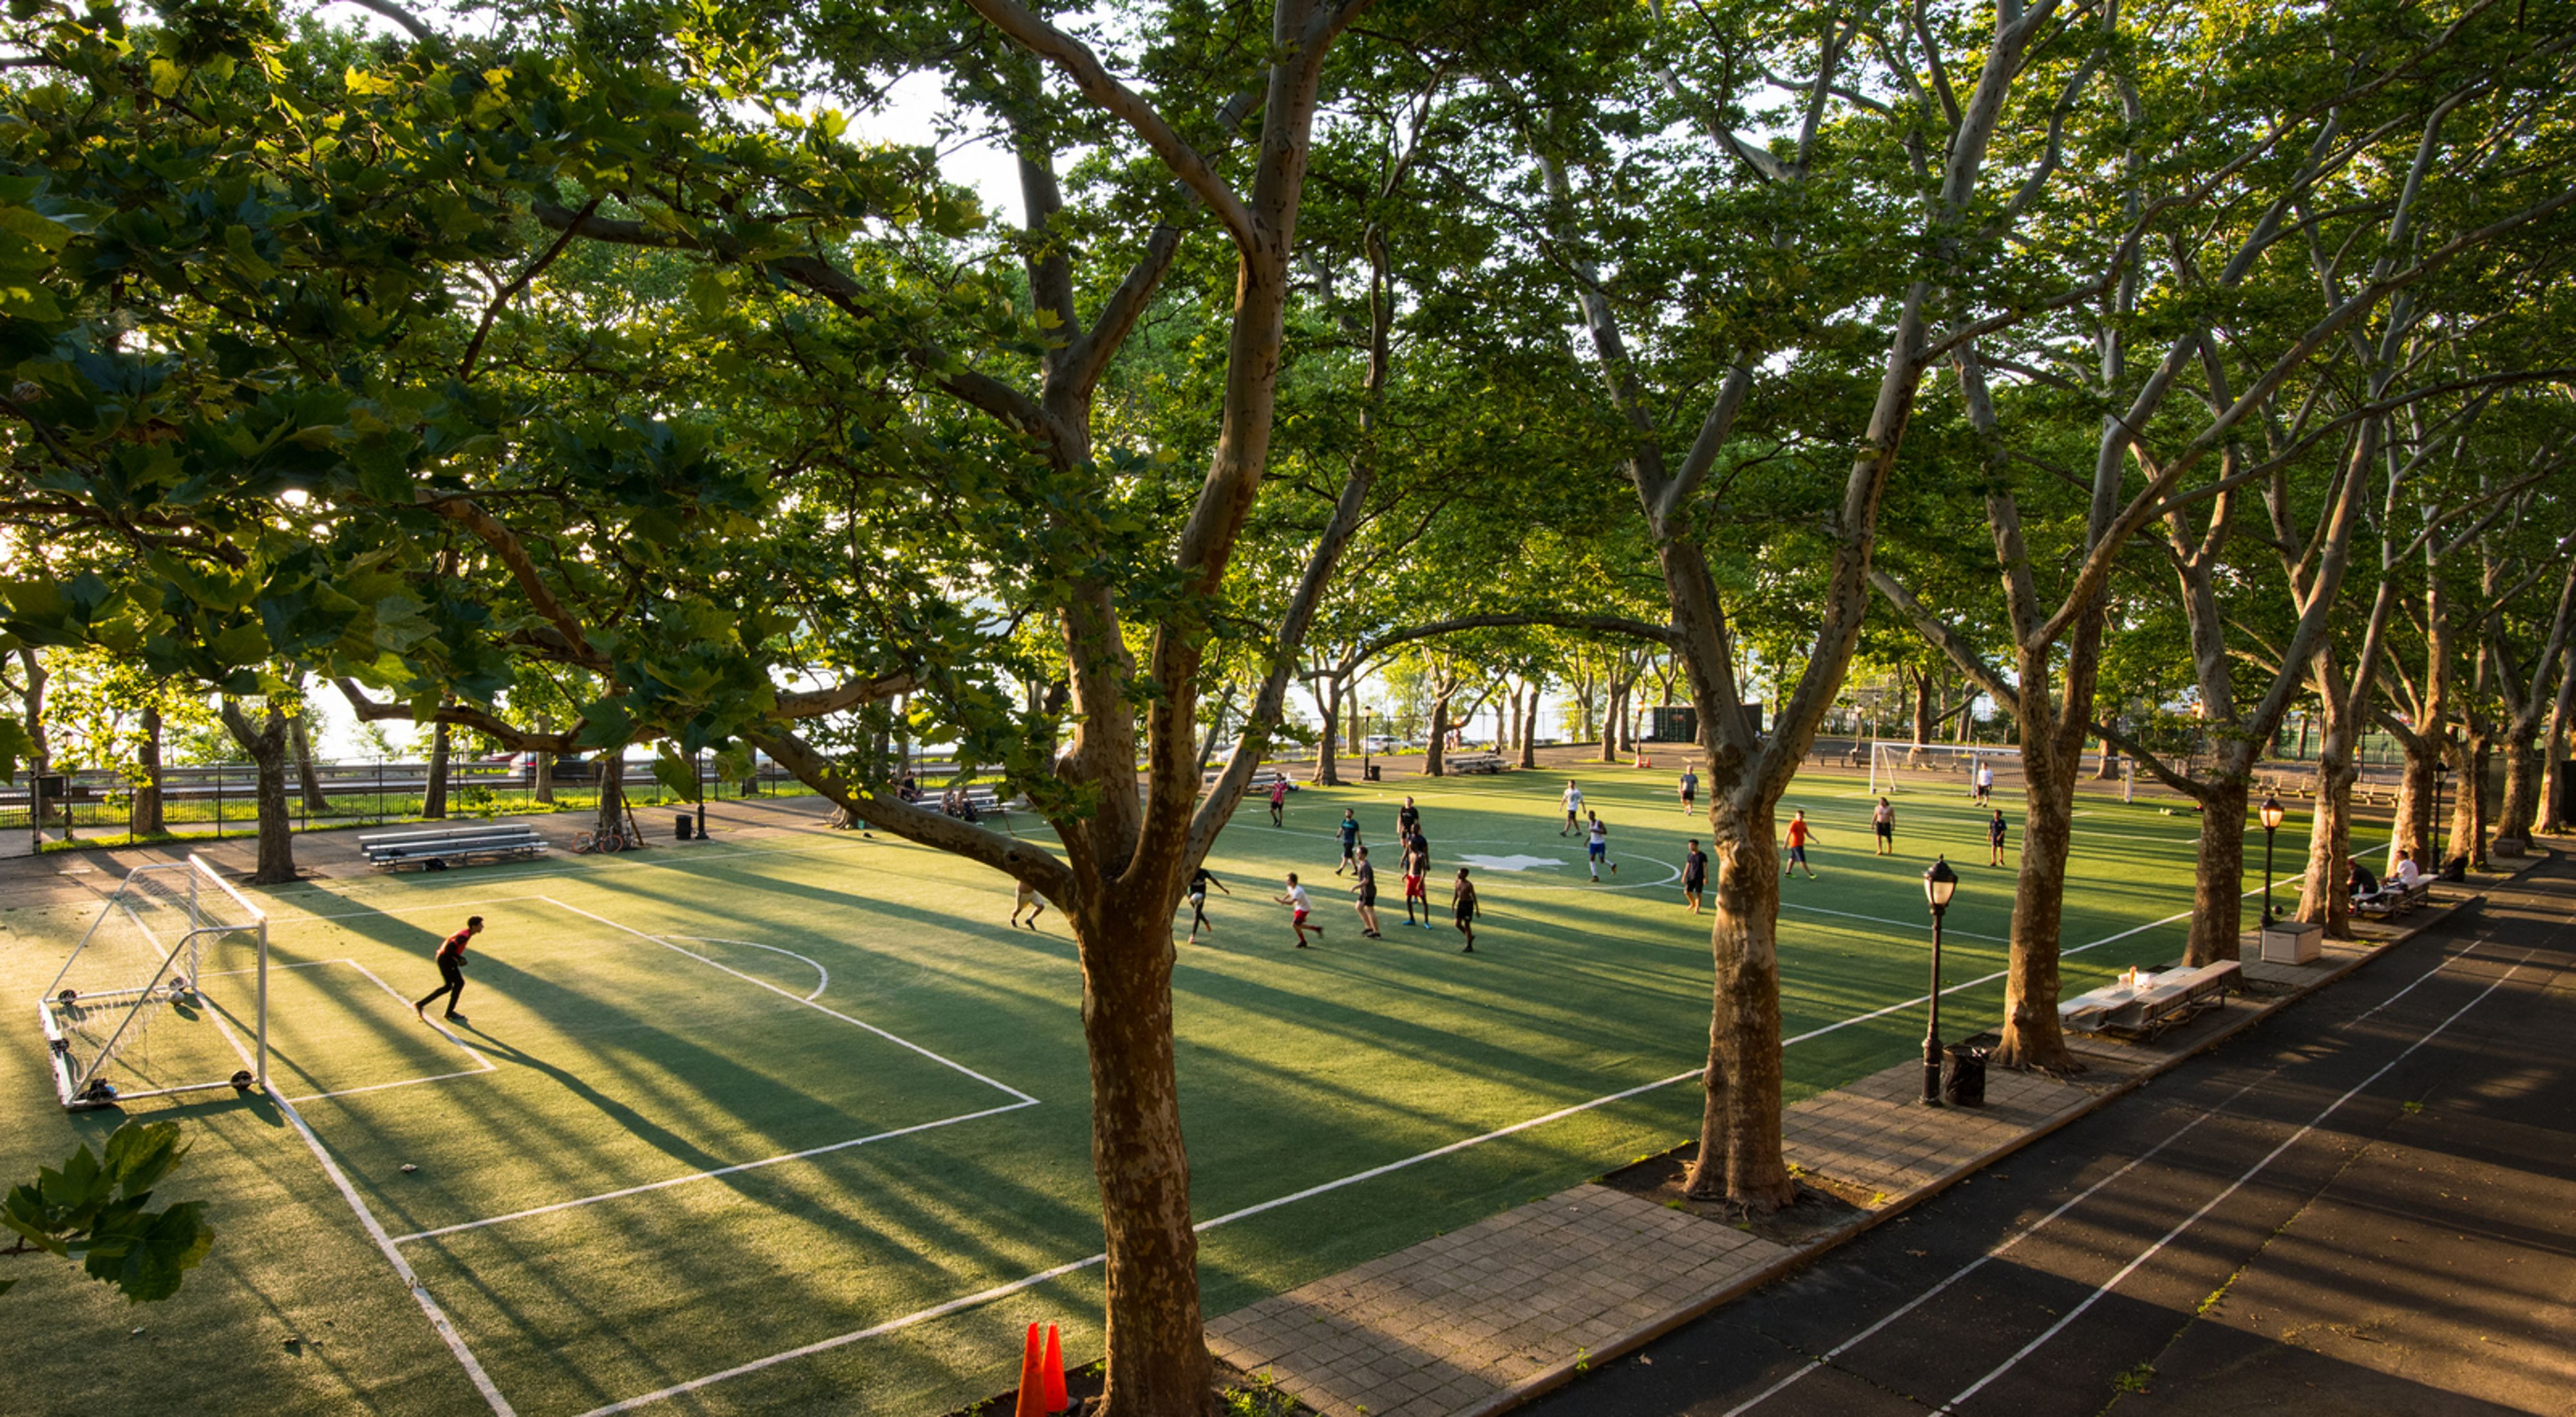 London Plane trees line a busy NYC soccer field.